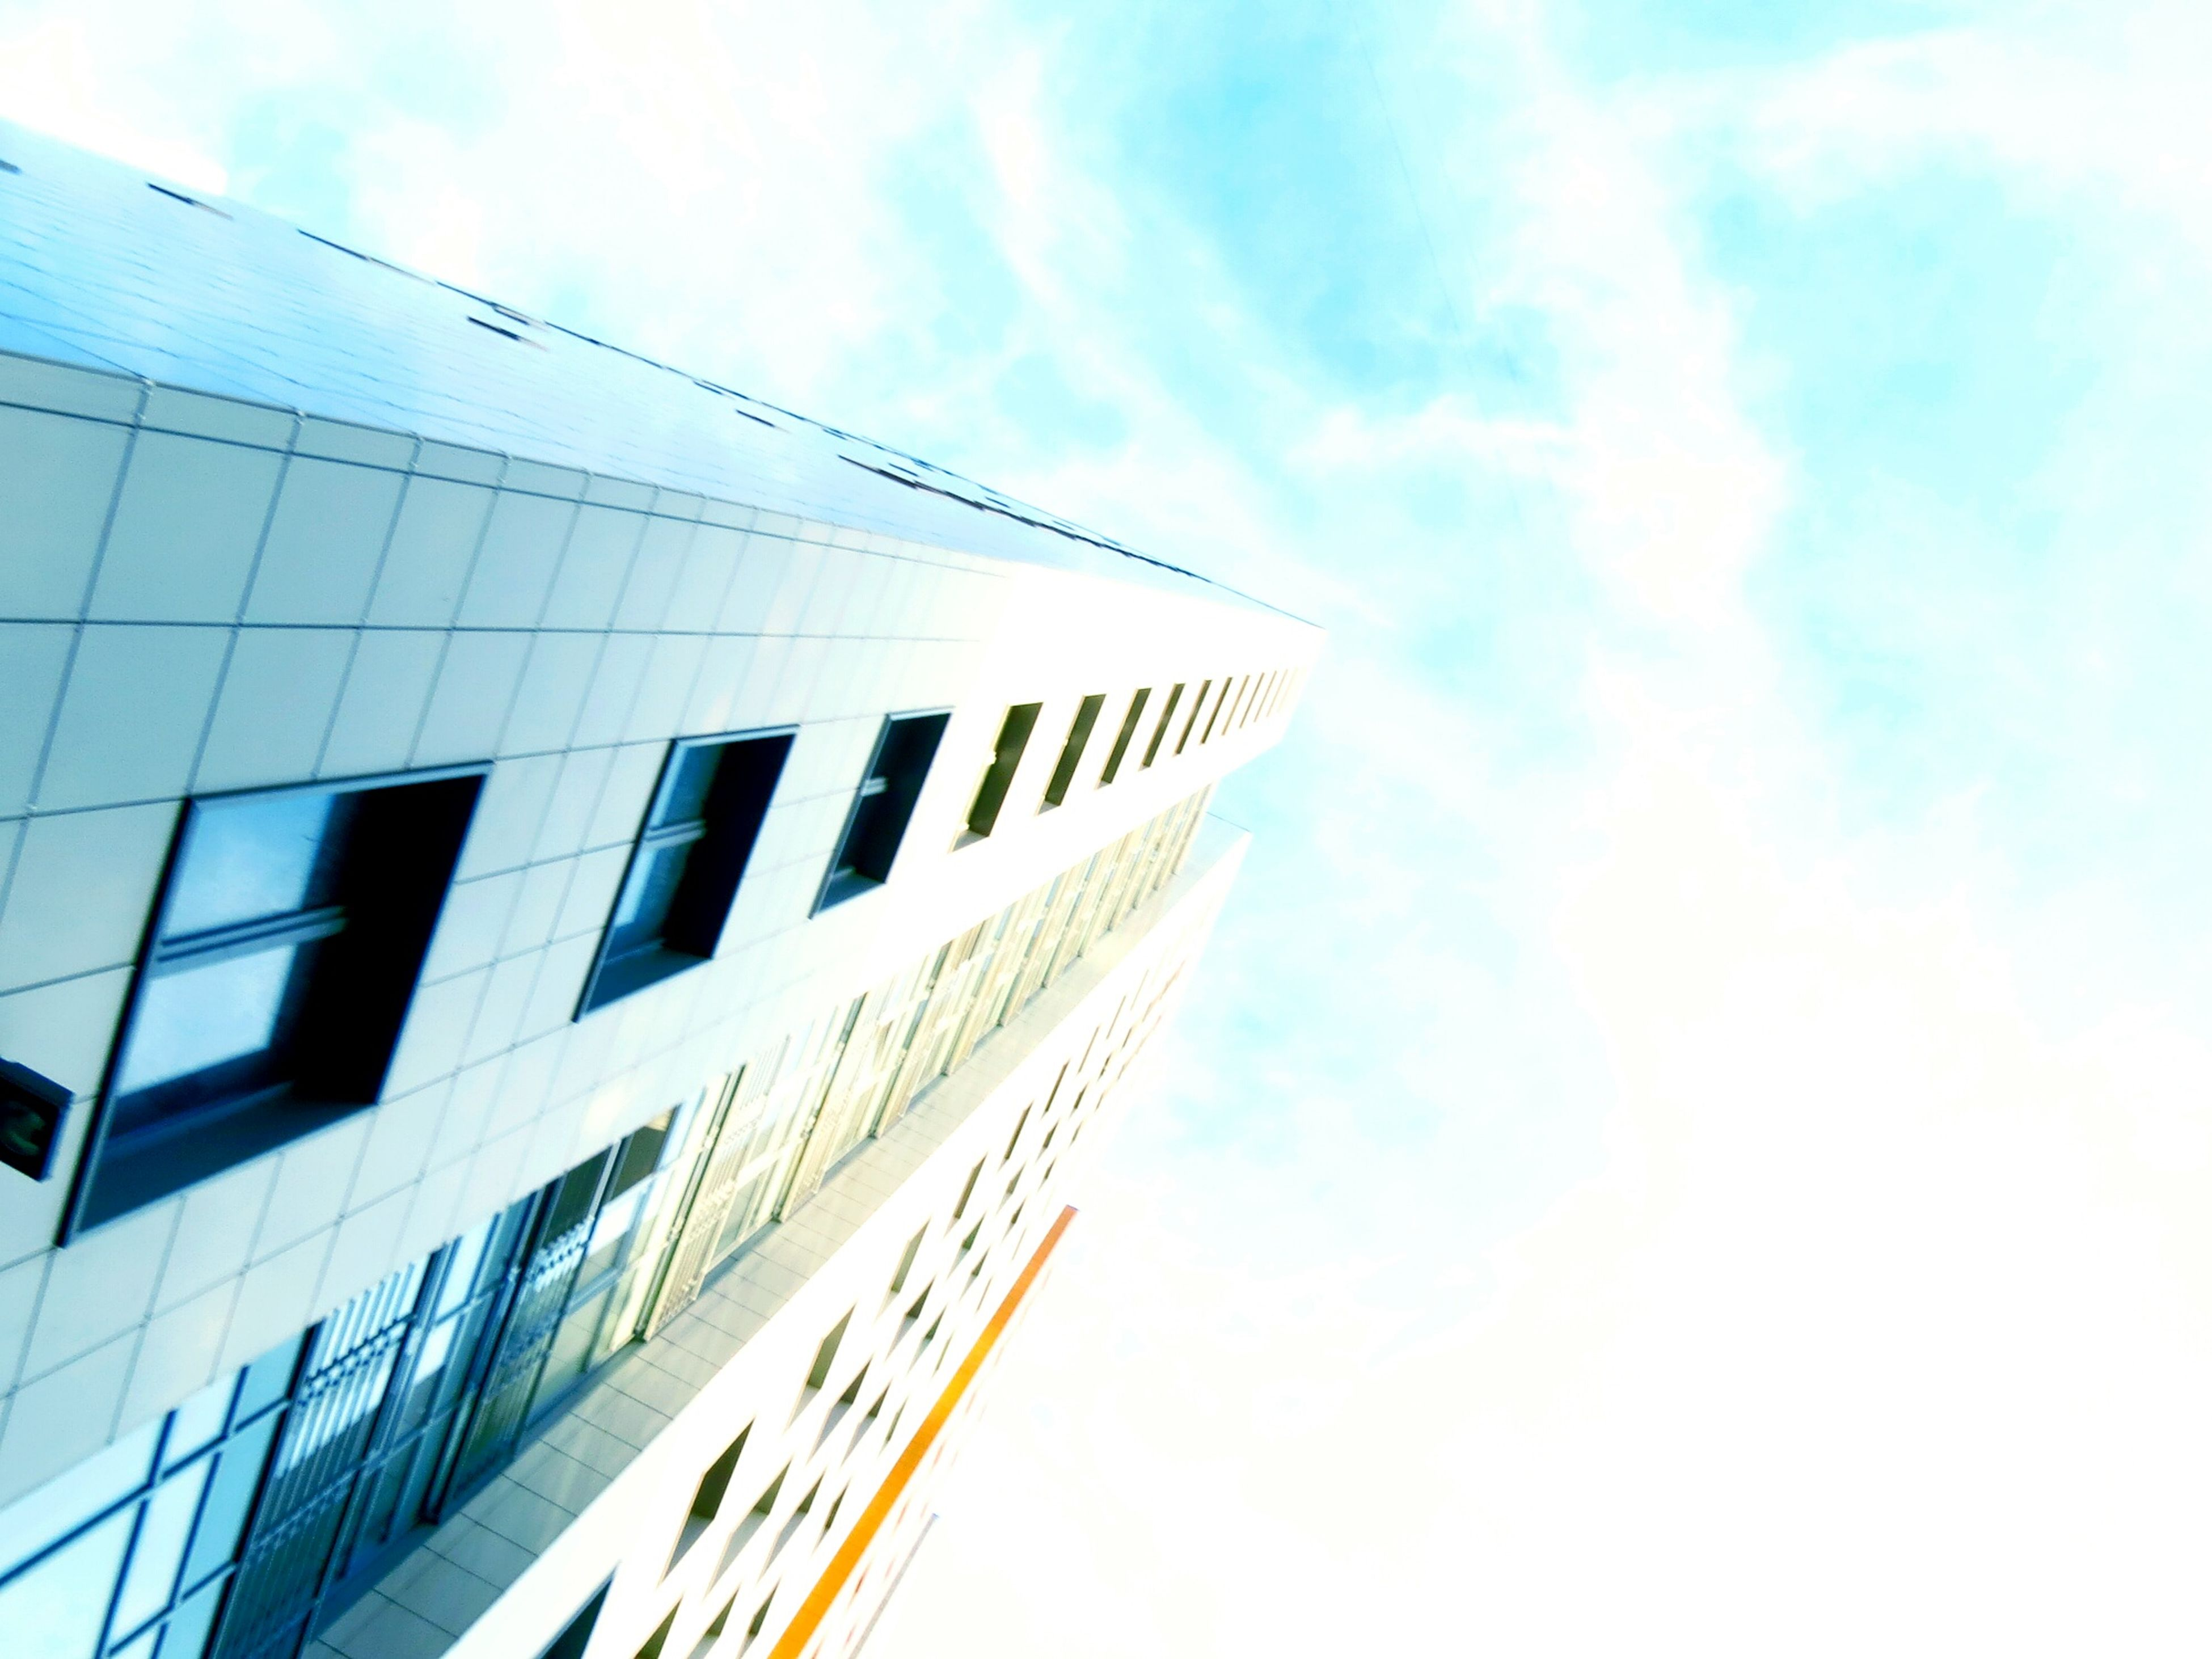 low angle view, architecture, building exterior, built structure, sky, modern, building, office building, city, tall - high, skyscraper, day, cloud - sky, tower, cloud, outdoors, no people, blue, in a row, tall